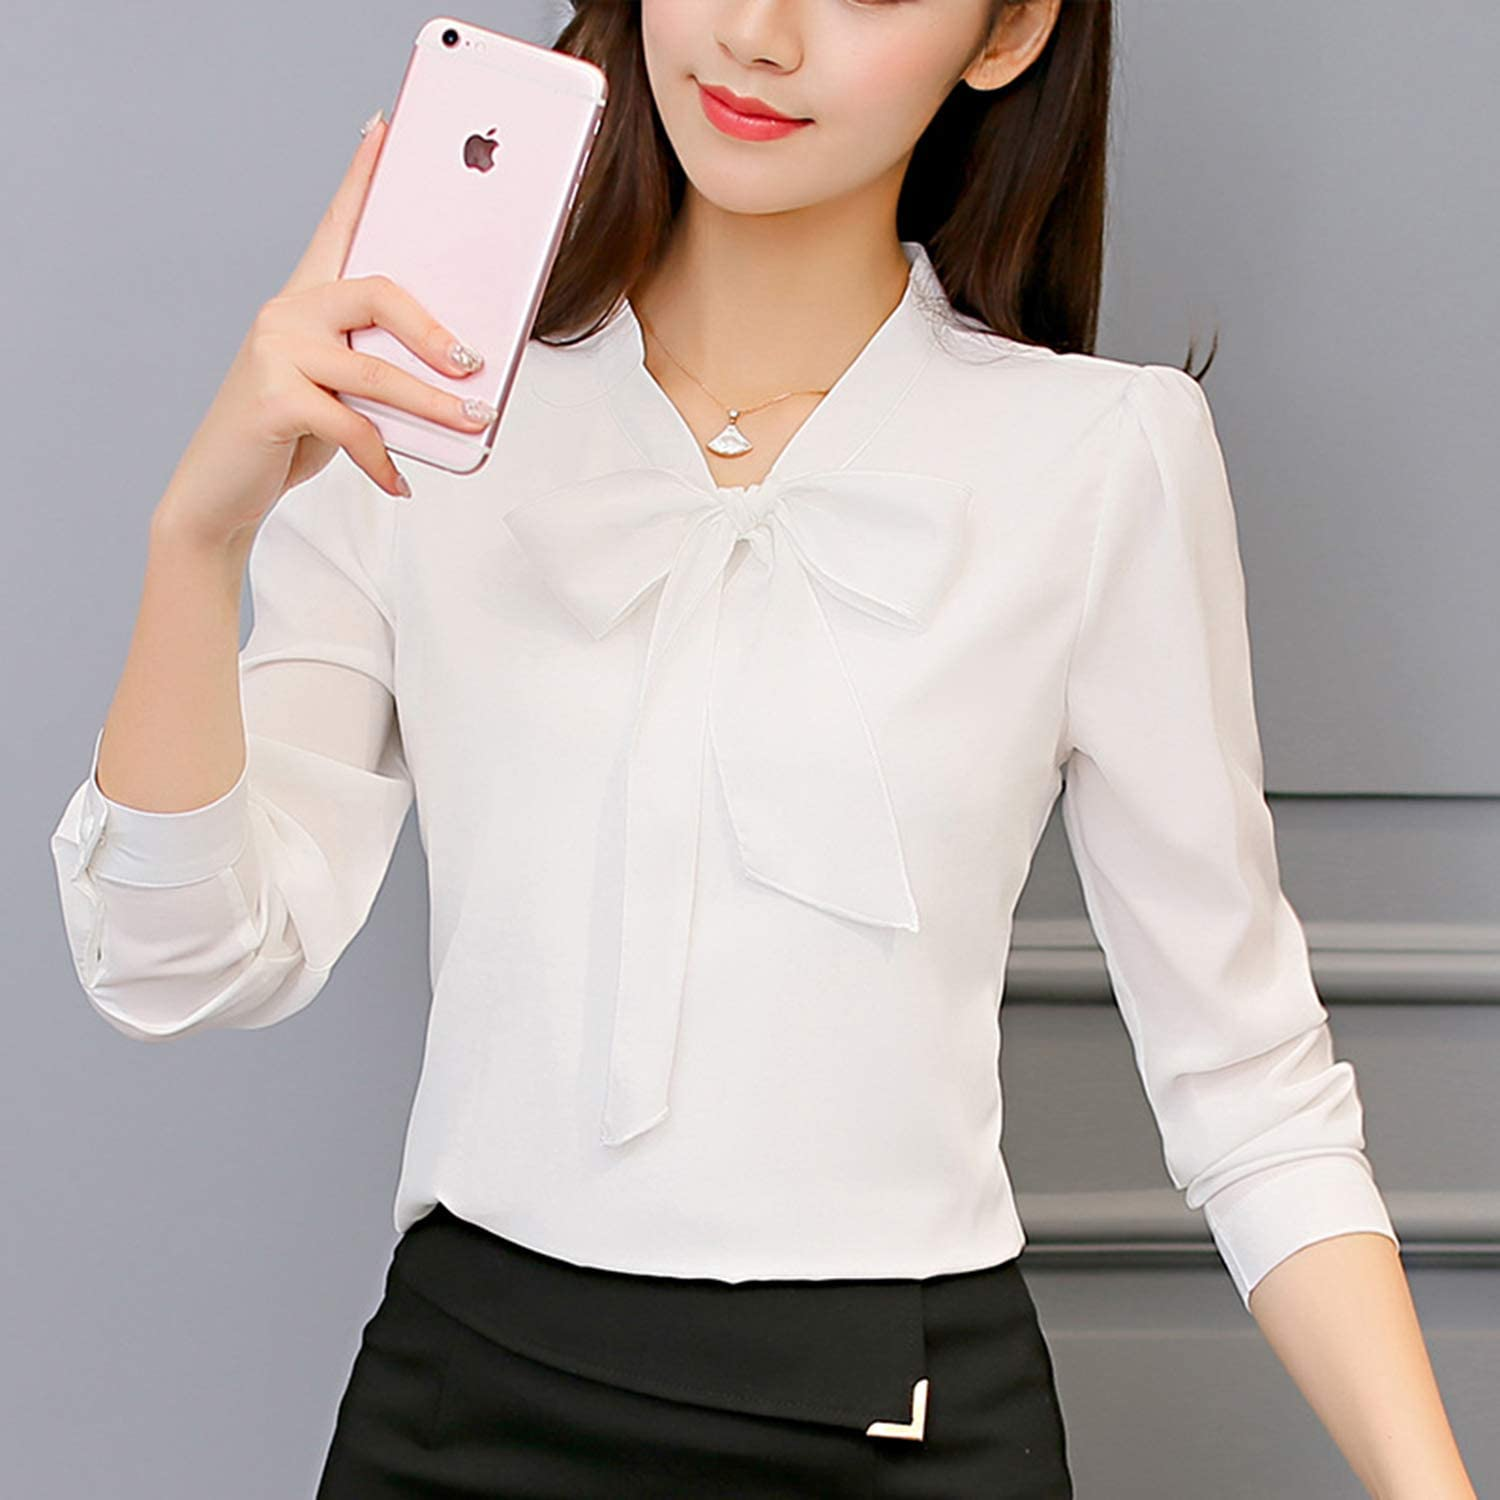 Spring Autumn The New Korean Casual Chiffon Blouse Shirt Pink